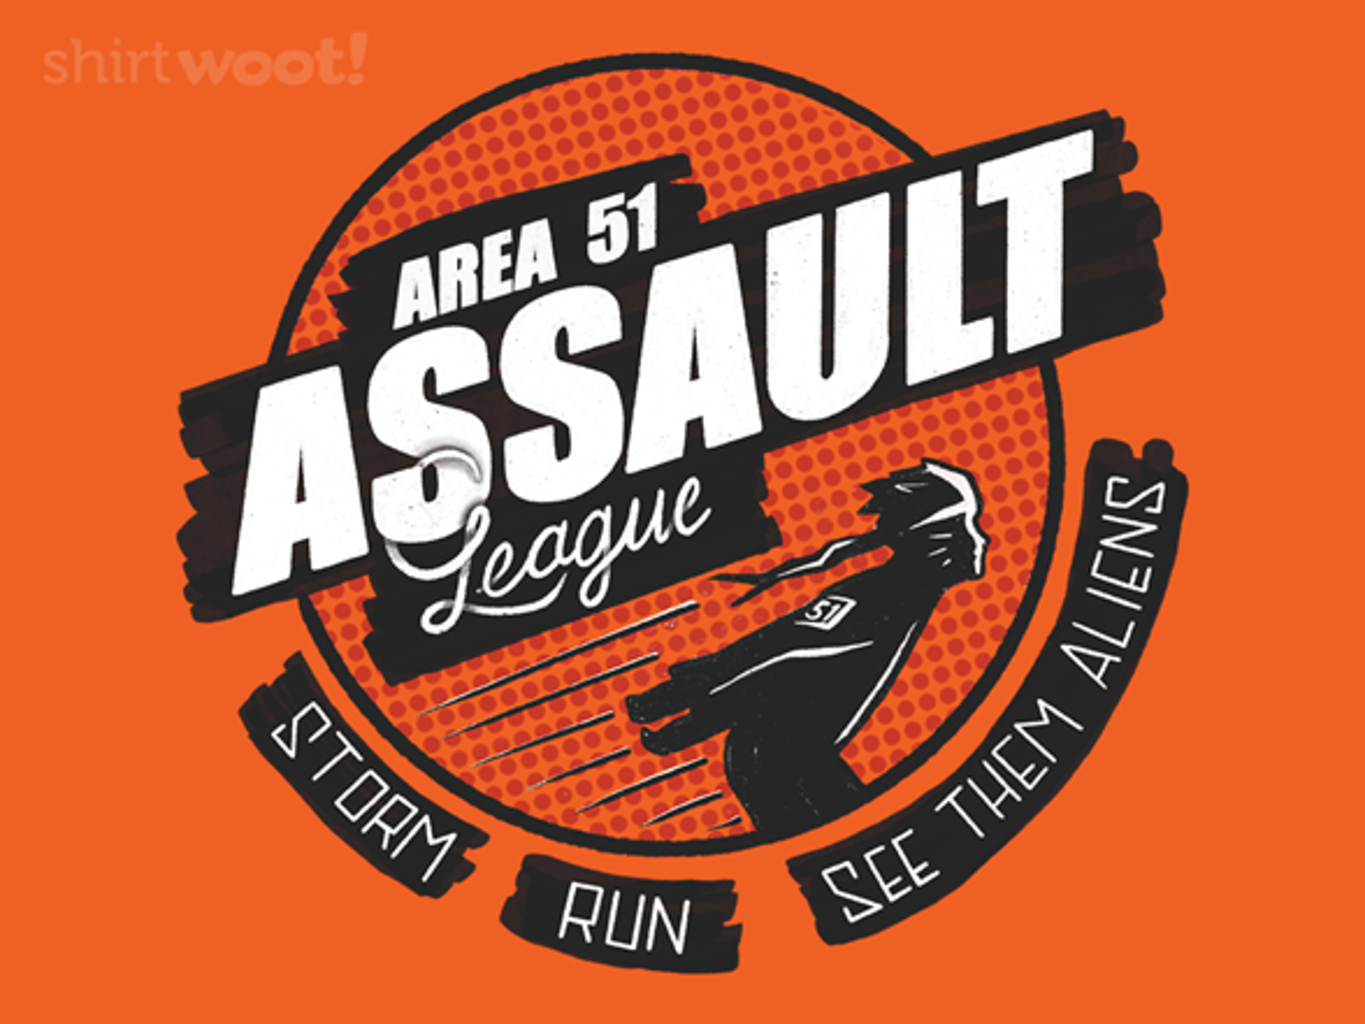 Woot!: Area 51 Assault League